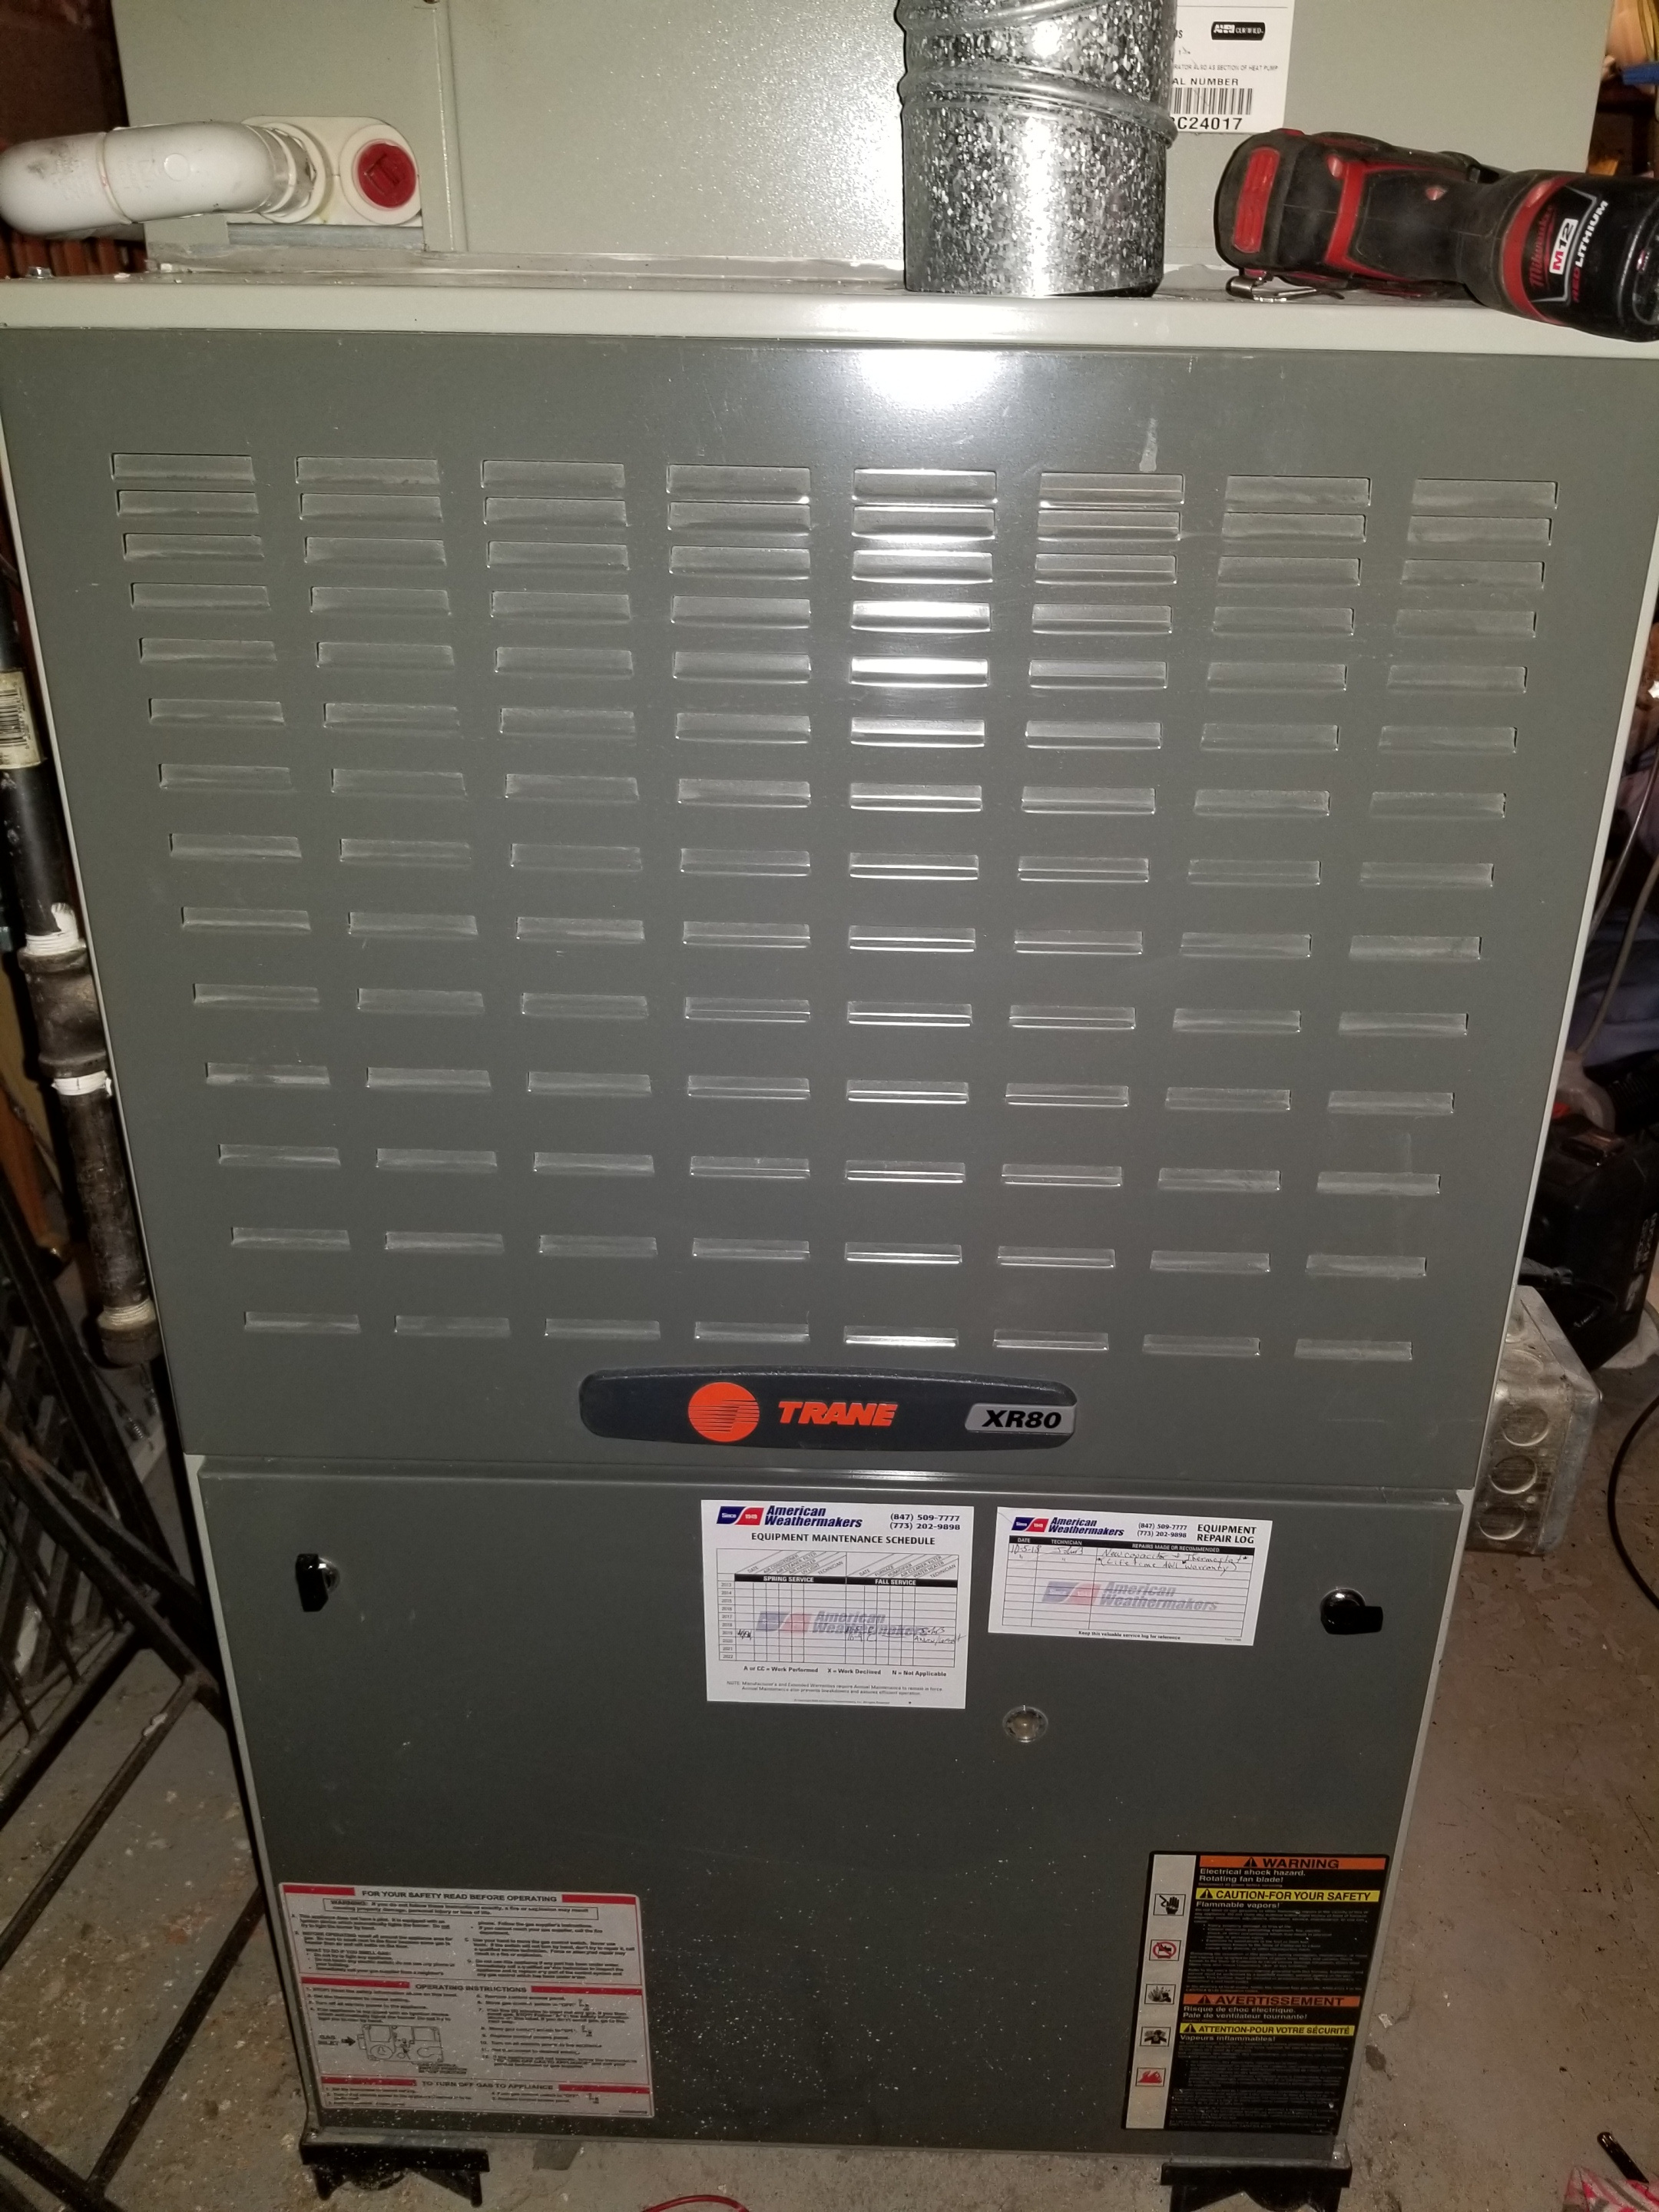 Repaired the Trane furnace and made adjustments to improve the overall efficiency and life expectancy of the equipment.